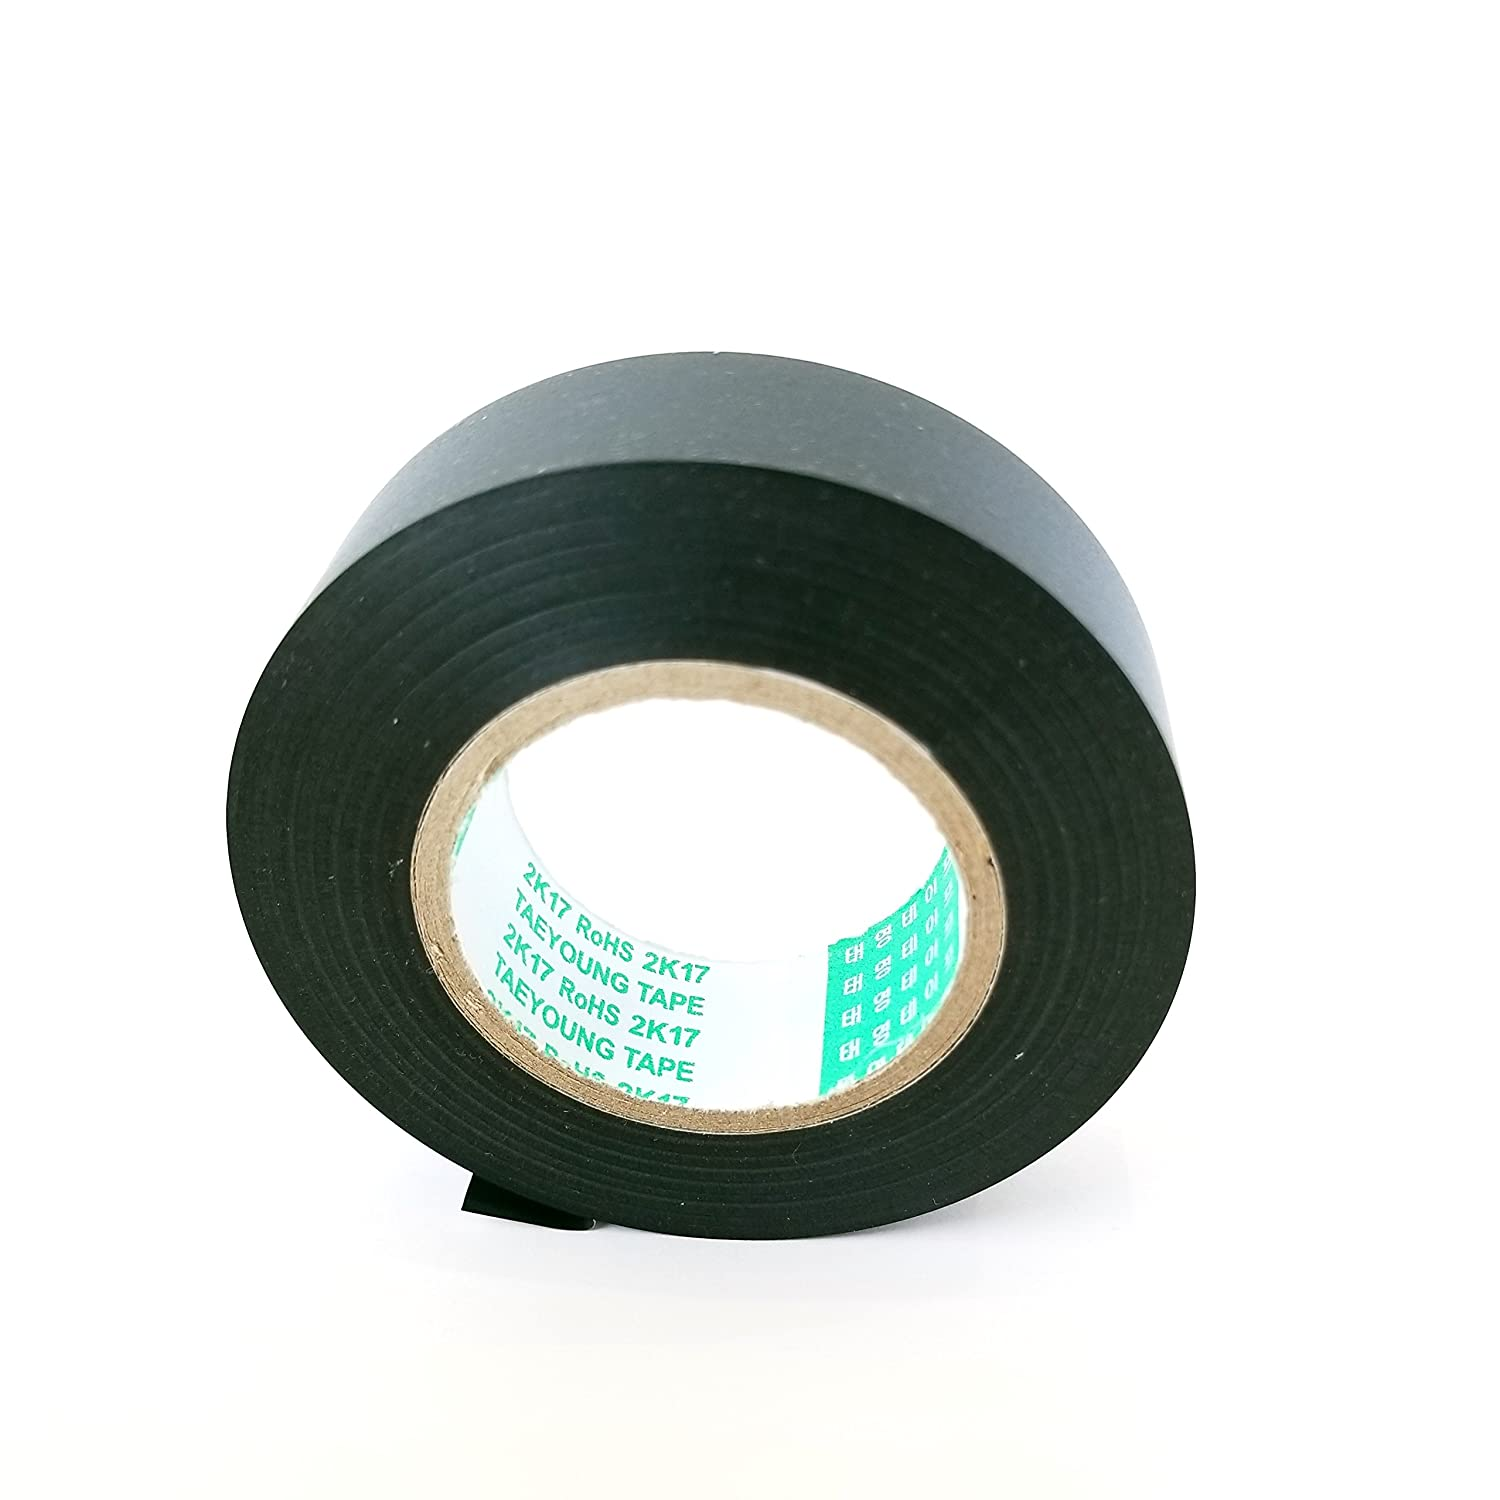 Amazon.com: TAEYOUNG GM/FORD PART-PVC TAPE <5 ROLLS of 3/4 x 82ft roll>  (19MM x 25M,Wire Harness Adhesive,PVC,BLACK): Automotive